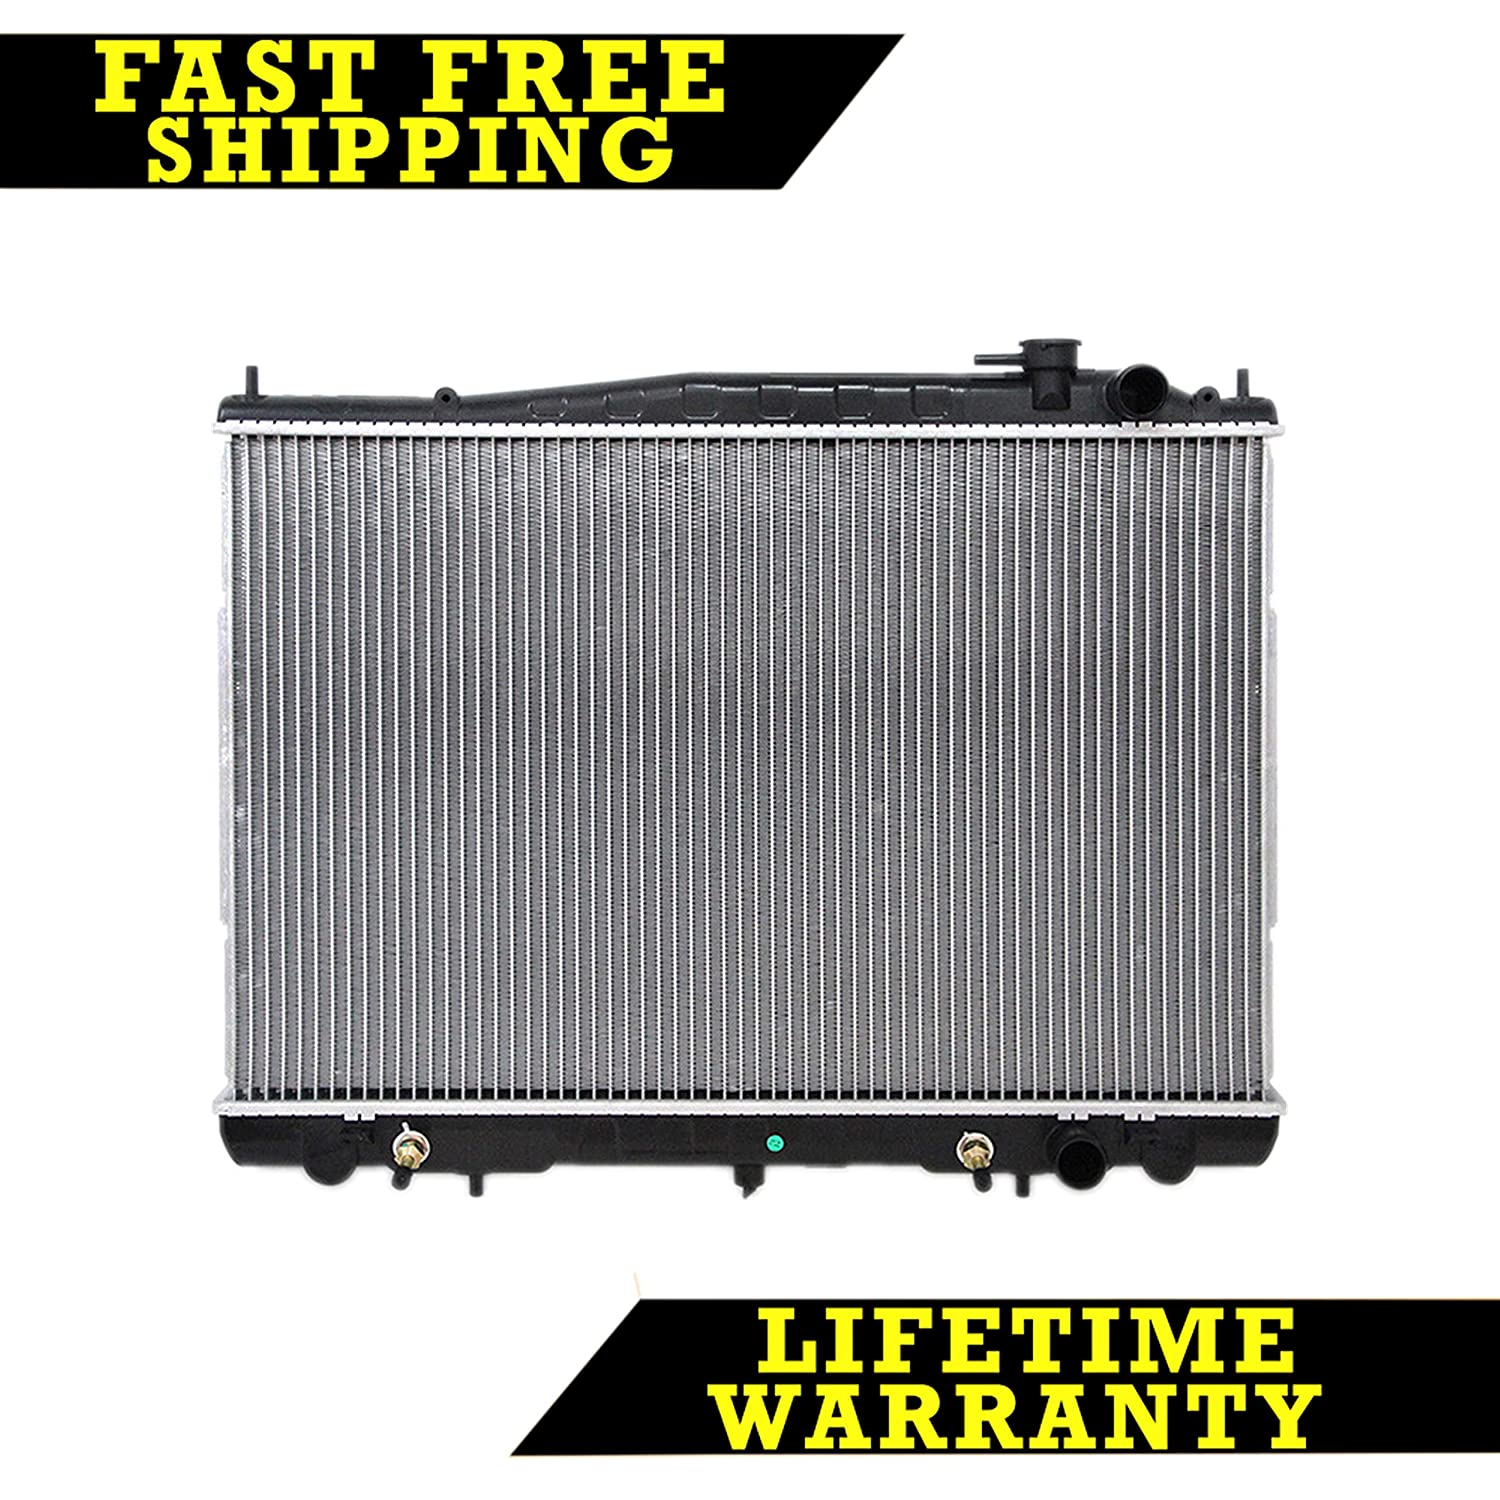 RADIATOR FOR NISSAN FITS XTERRA FRONTIER 2.4 3.3 L4 4CYL V6 6CYL 2215 Sunbelt Radiators